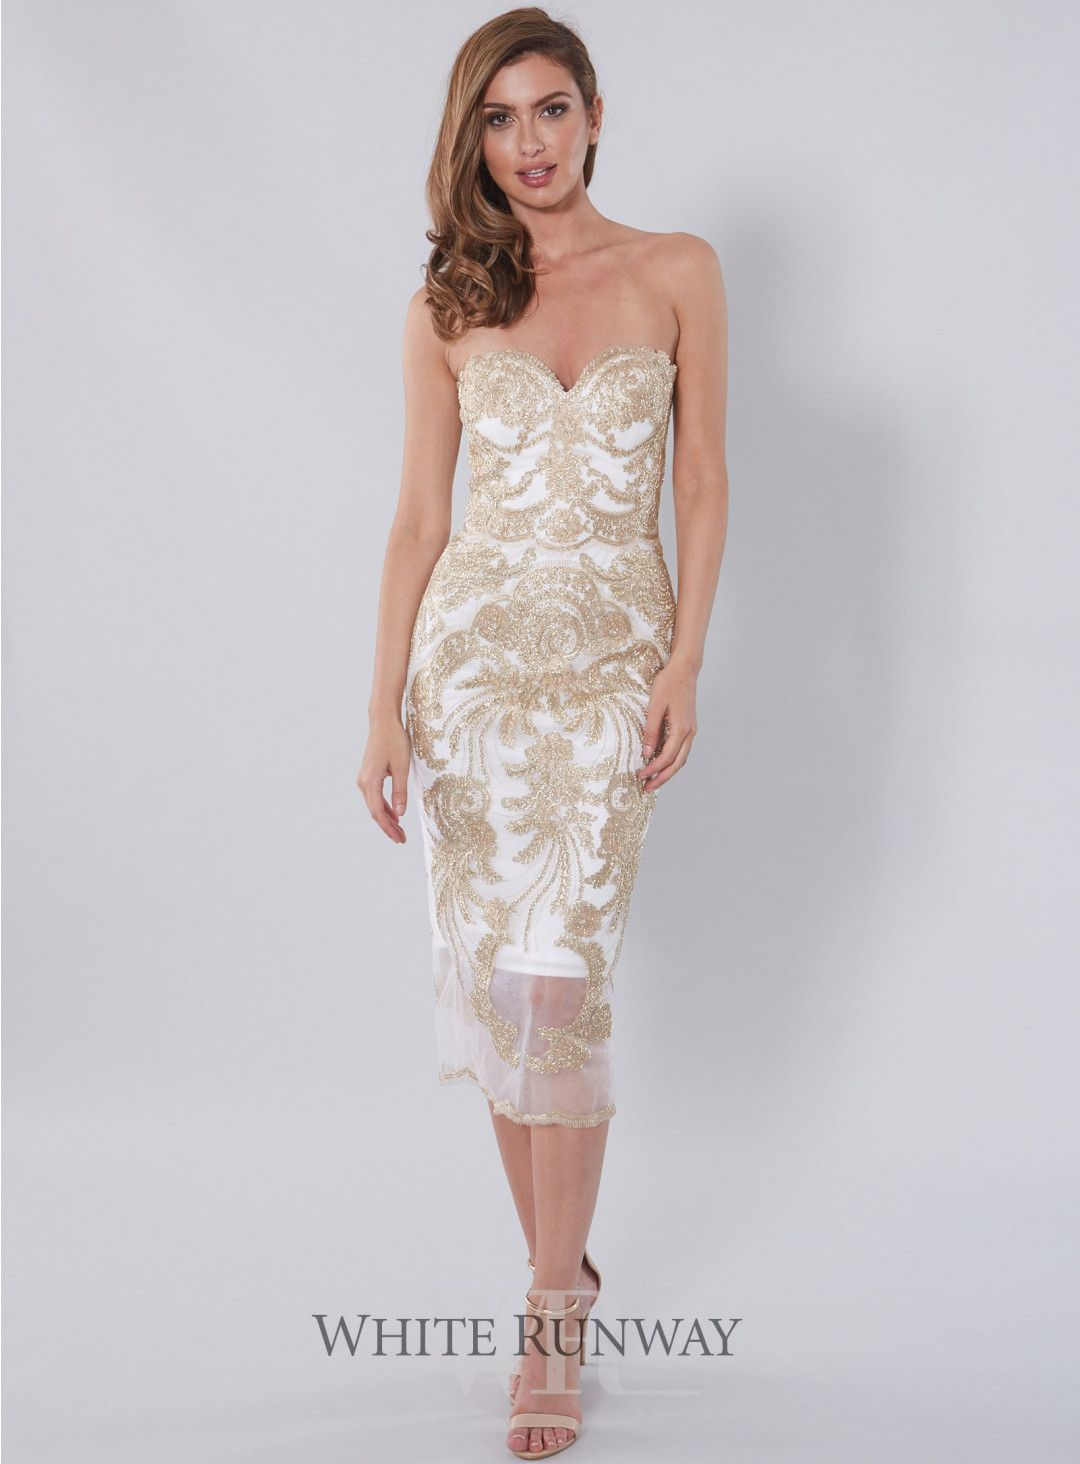 60fb98ddf84 Mamita Dress. A stunning midi dress by Jadore. A fitted strapless style  featuring a gold lace applique.